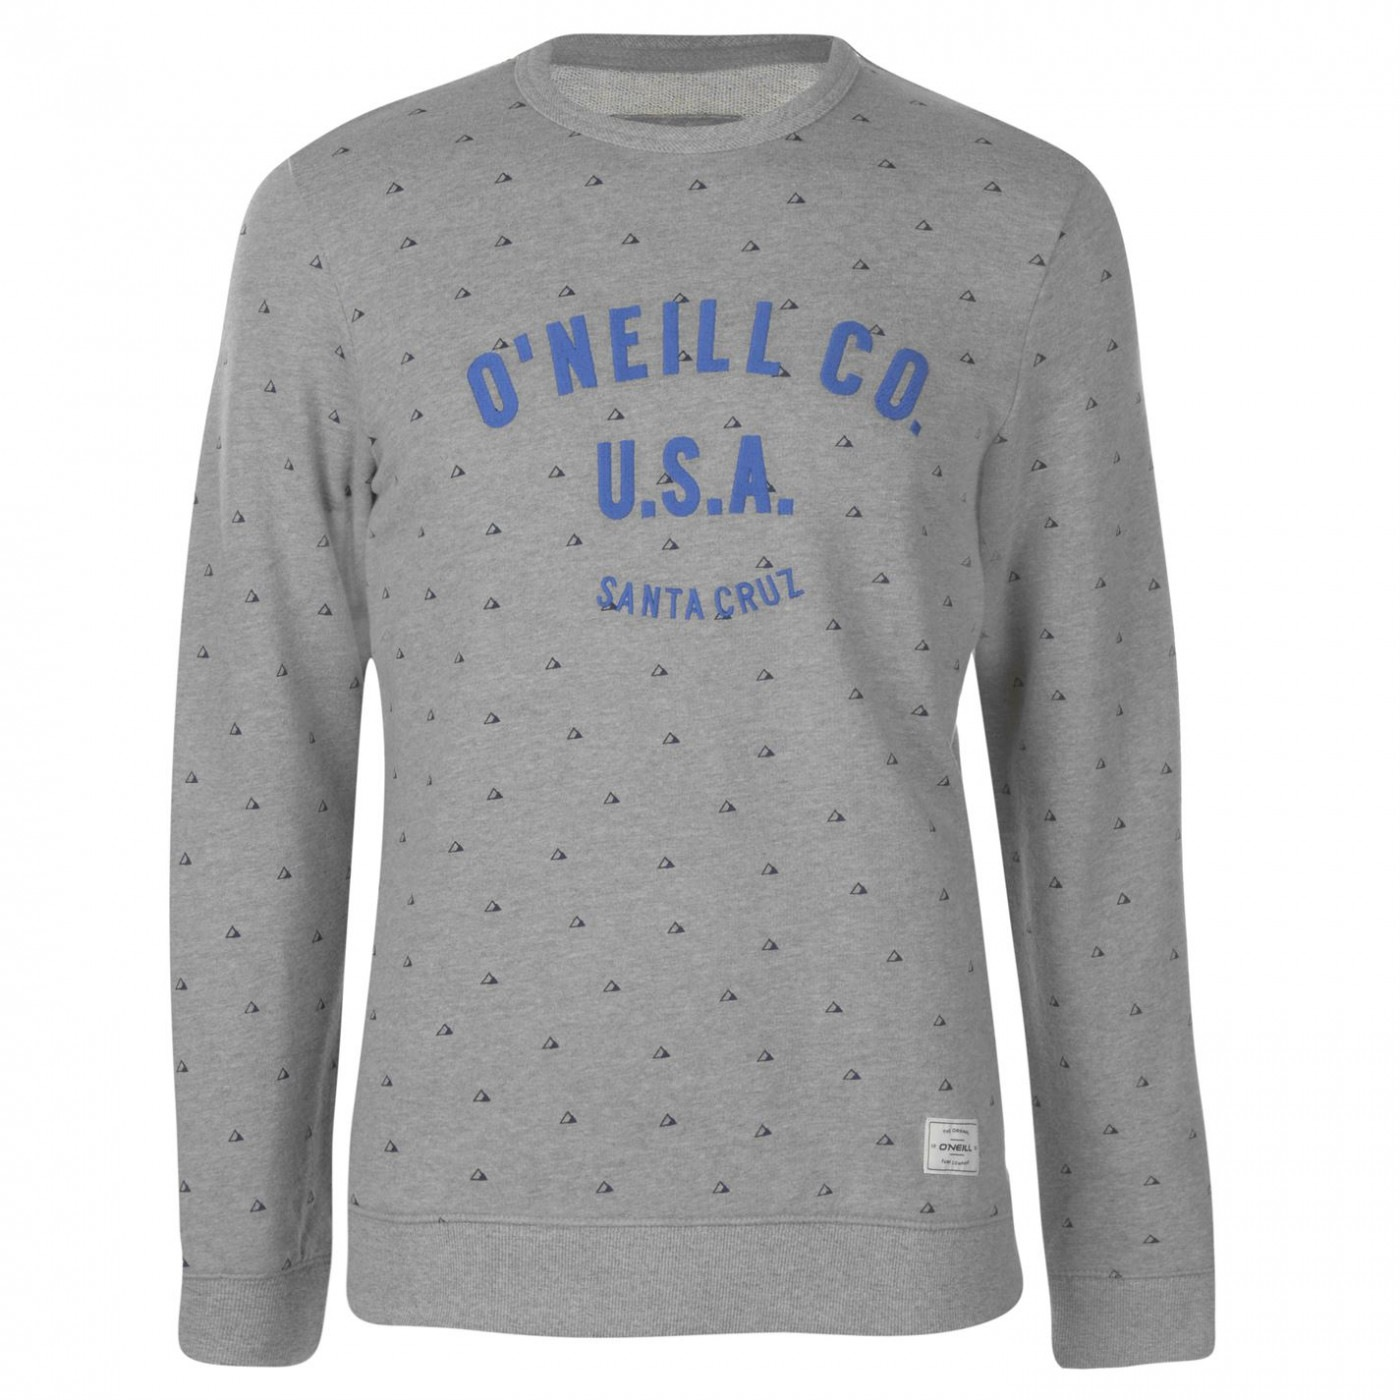 ONeill Laid Back Crew Sweater Mens